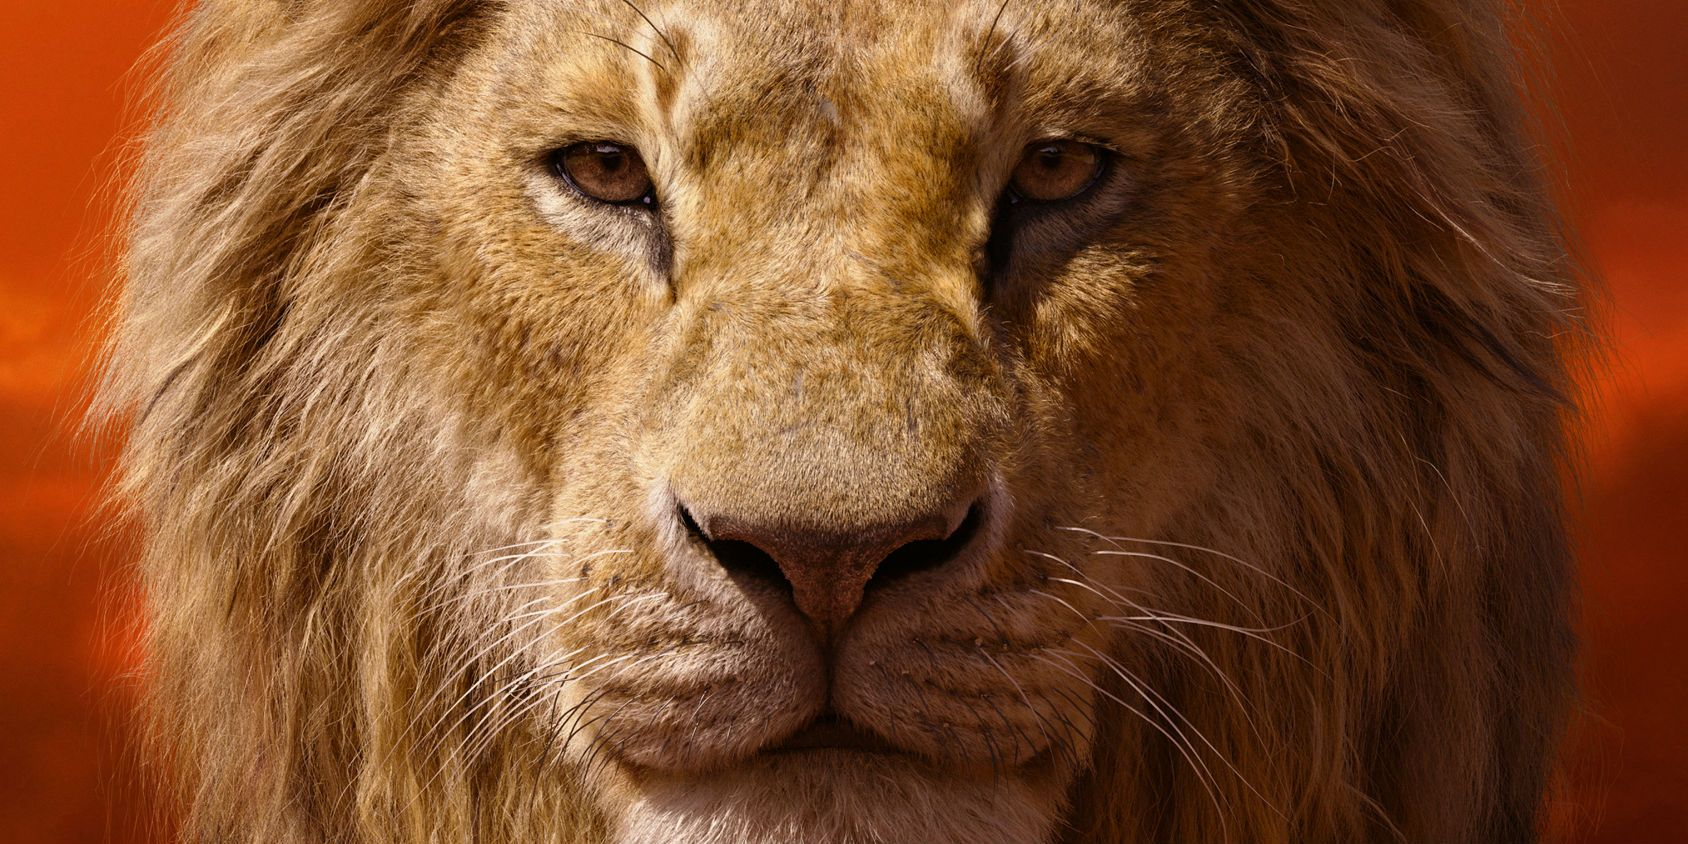 Lion King 2019 Movie Posters: Lion King Character Posters Reveal Best Look At Timon